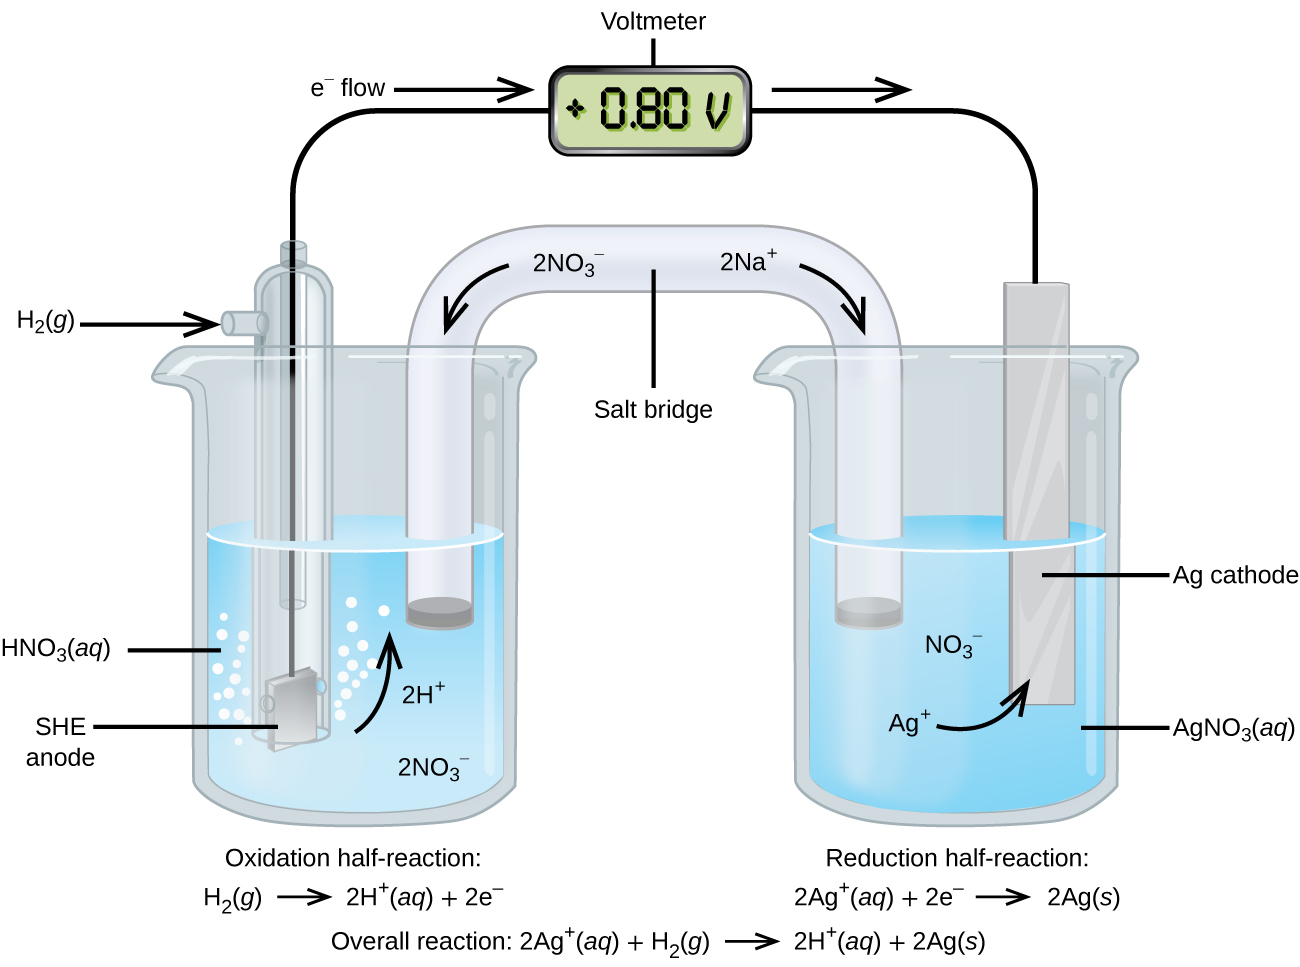 "This figure contains a diagram of an electrochemical cell. Two beakers are shown. Each is just over half full. The beaker on the left contains a clear, colorless solution which is labeled ""H N O subscript 3 ( a q )."" The beaker on the right contains a clear, colorless solution which is labeled ""A g N O subscript 3 ( a q )."" A glass tube in the shape of an inverted U connects the two beakers at the center of the diagram and is labeled ""Salt bridge."" The tube contents are colorless. The ends of the tubes are beneath the surface of the solutions in the beakers and a small grey plug is present at each end of the tube. The label ""2 N a superscript plus"" appears on the upper right portion of the tube. A curved arrow extends from this label down and to the right. The label ""2 N O subscript 3 superscript negative"" appears on the upper left portion of the tube. A curved arrow extends from this label down and to the left. The beaker on the left has a glass tube partially submerged in the liquid. Bubbles are rising from the grey square, labeled ""SHE anode"" at the bottom of the tube. A curved arrow points up to the right. The labels ""2 H superscript plus"" and ""2 N O subscript 3 superscript negative"" appear on the liquid in the beaker. A black wire extends from the grey square up the interior of the tube through a small port at the top to a rectangle with a digital readout of ""positive 0.80 V"" which is labeled ""Voltmeter."" A second small port extends out the top of the tube to the left. An arrow points to the port opening from the left. The base of this arrow is labeled ""H subscript 2 ( g )."" The beaker on the right has a silver strip that is labeled ""A g cathode."" A wire extends from the top of this strip to the voltmeter. An arrow points toward the voltmeter from the left which is labeled ""e superscript negative flow."" Similarly, an arrow points away from the voltmeter to the right. The solution in the beaker on the right has the labels ""N O subscript 3 superscript negative"" and ""A g superscript plus"" on the solution. A curved arrow extends from the A g superscript plus label to the A g cathode. Below the left beaker at the bottom of the diagram is the label ""Oxidation half-reaction: H subscript 2 ( g ) right pointing arrow 2 H superscript plus ( a q ) plus 2 e superscript negative."" Below the right beaker at the bottom of the diagram is the label ""Reduction half-reaction: 2 A g superscript plus ( a q ) right pointing arrow 2 A g ( s )."""